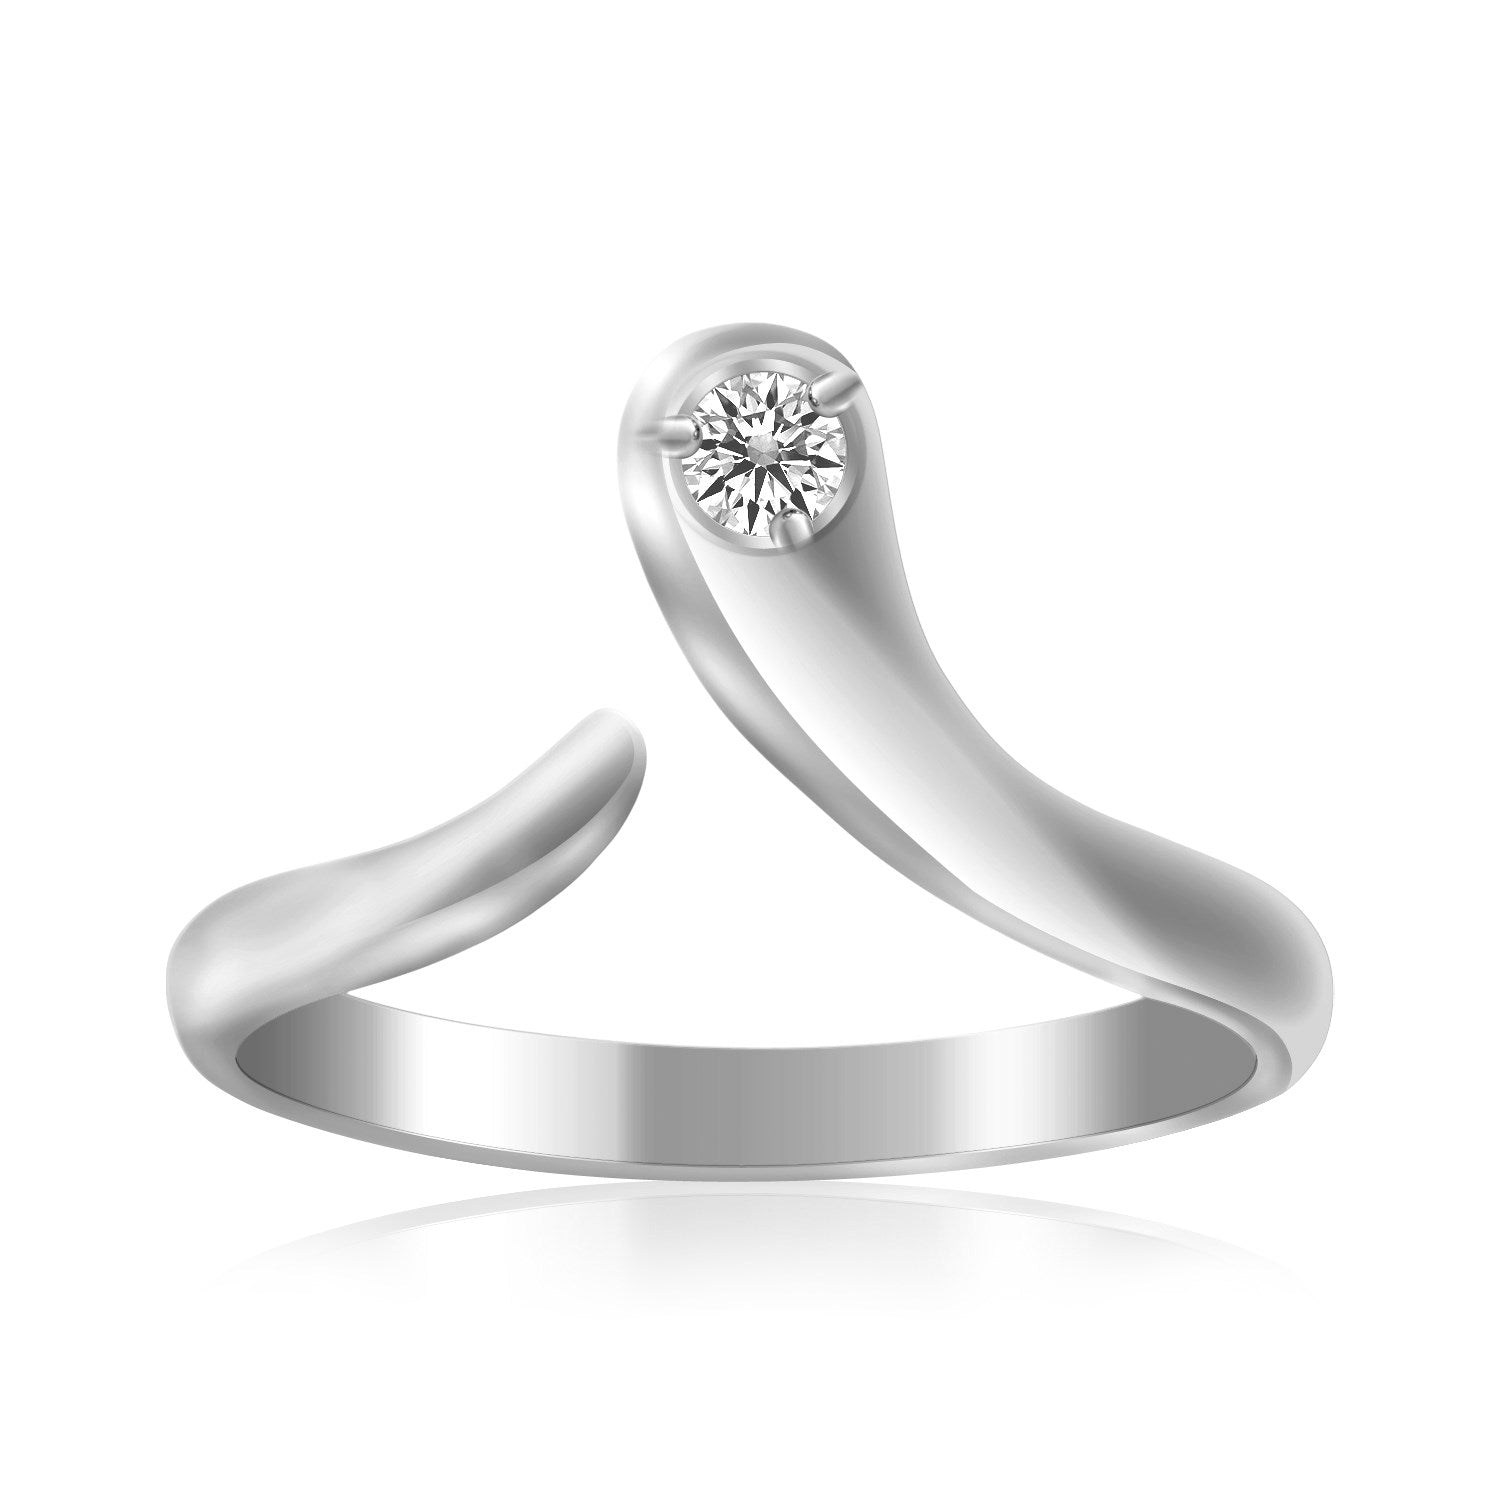 Sterling Silver Rhodium Plated White Cubic Zirconia Accented Shiny Toe Ring - Uniquepedia.com